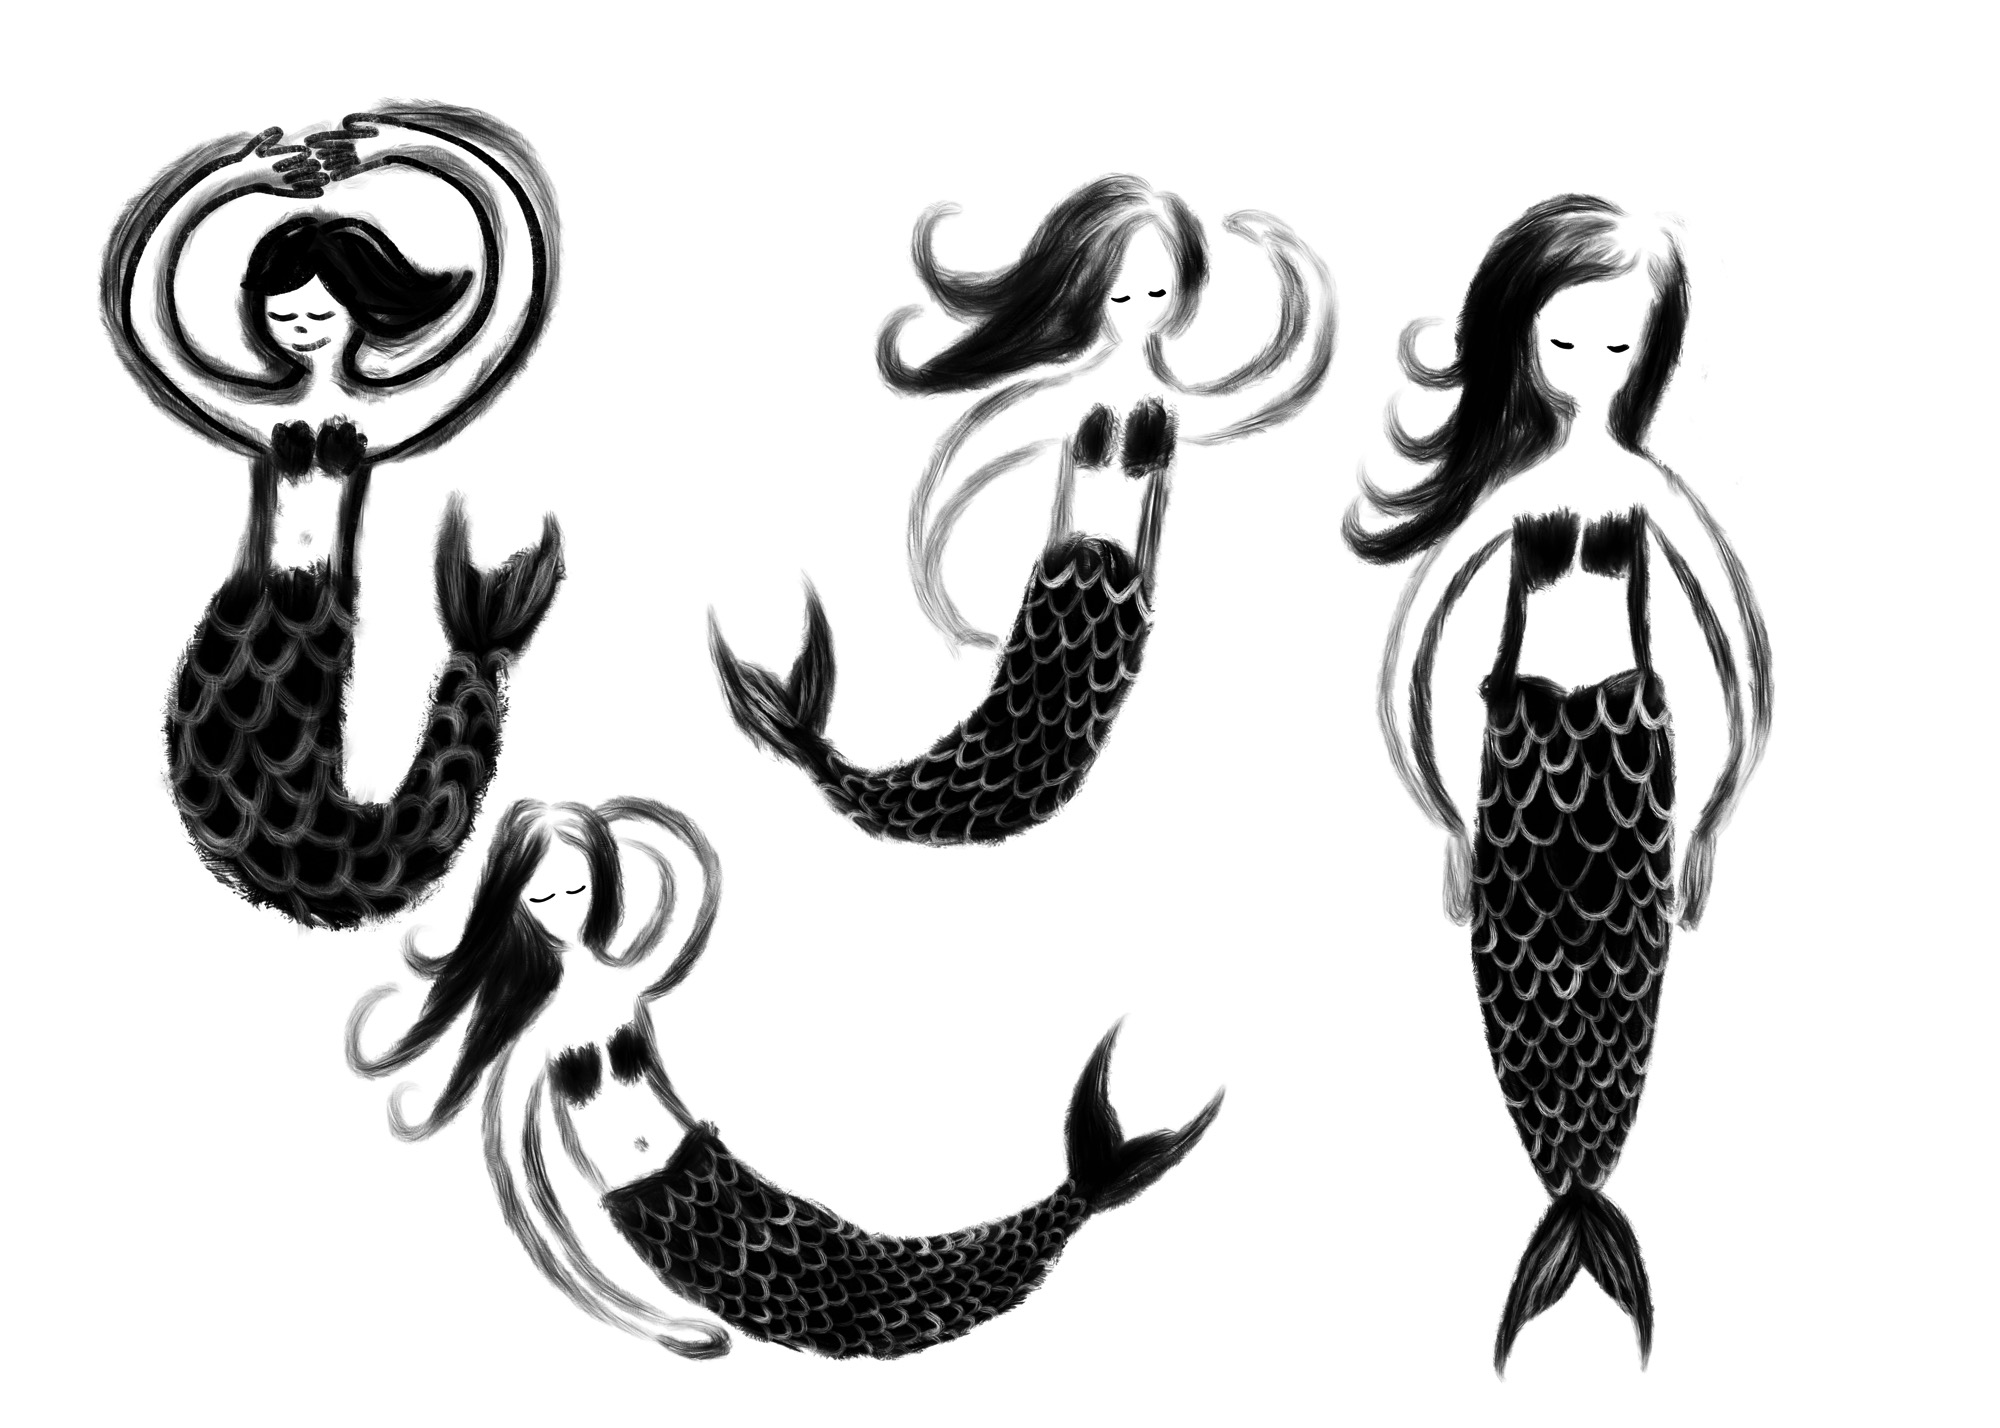 Mermaids by Lisa Bardot